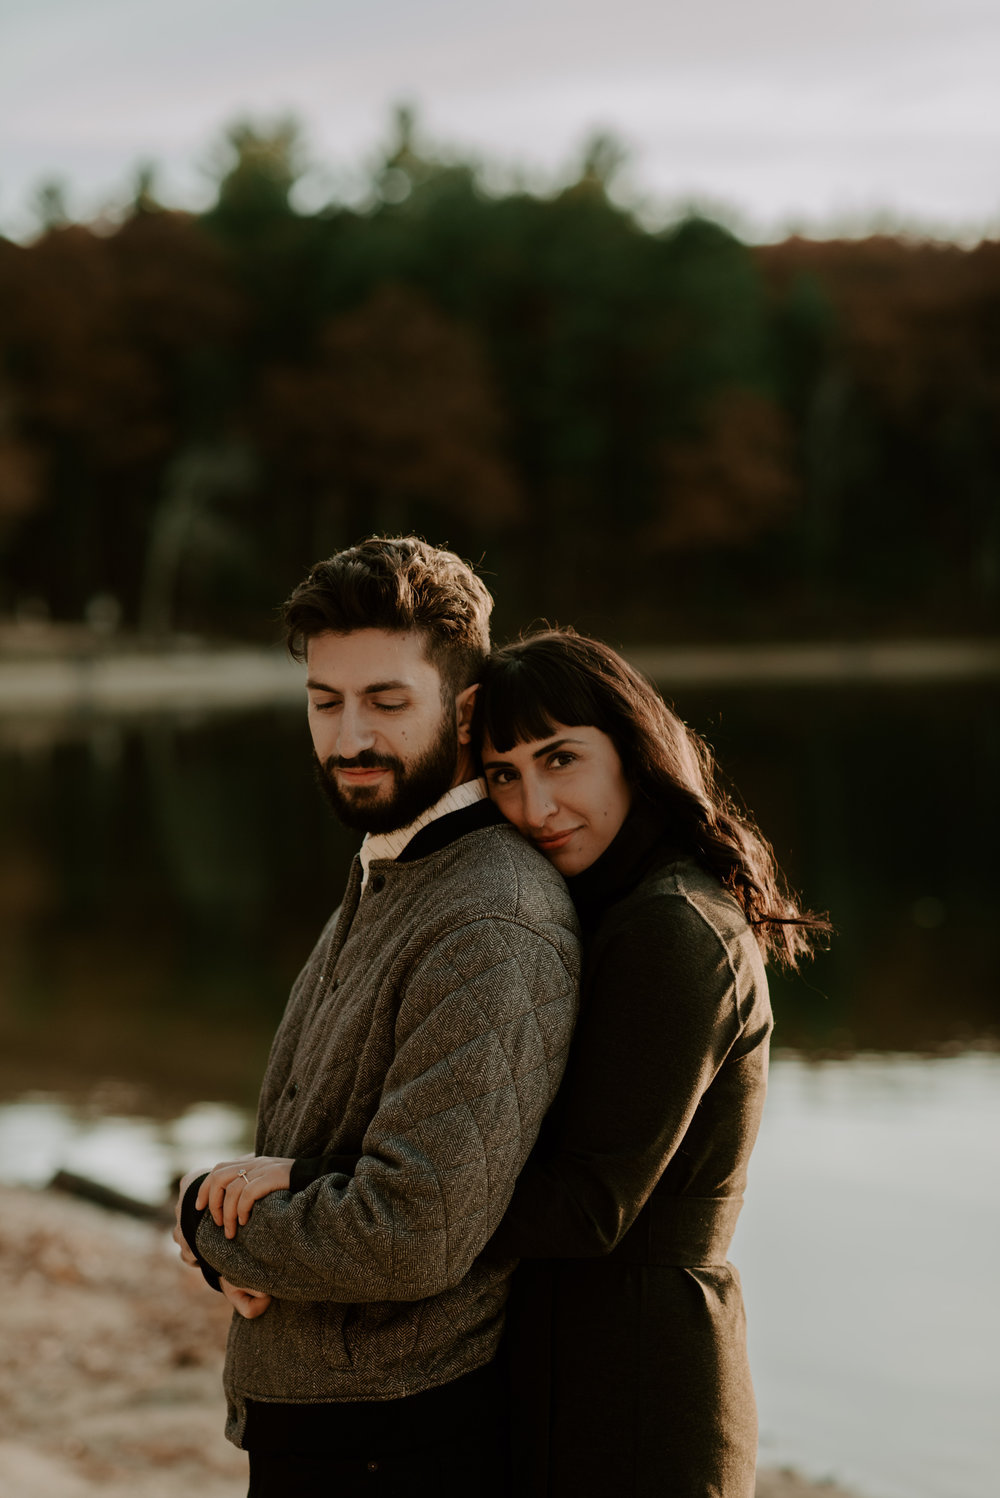 Kiki and Michael's Autumn Walden Pond Engagement Session | Boston Wedding Photographer